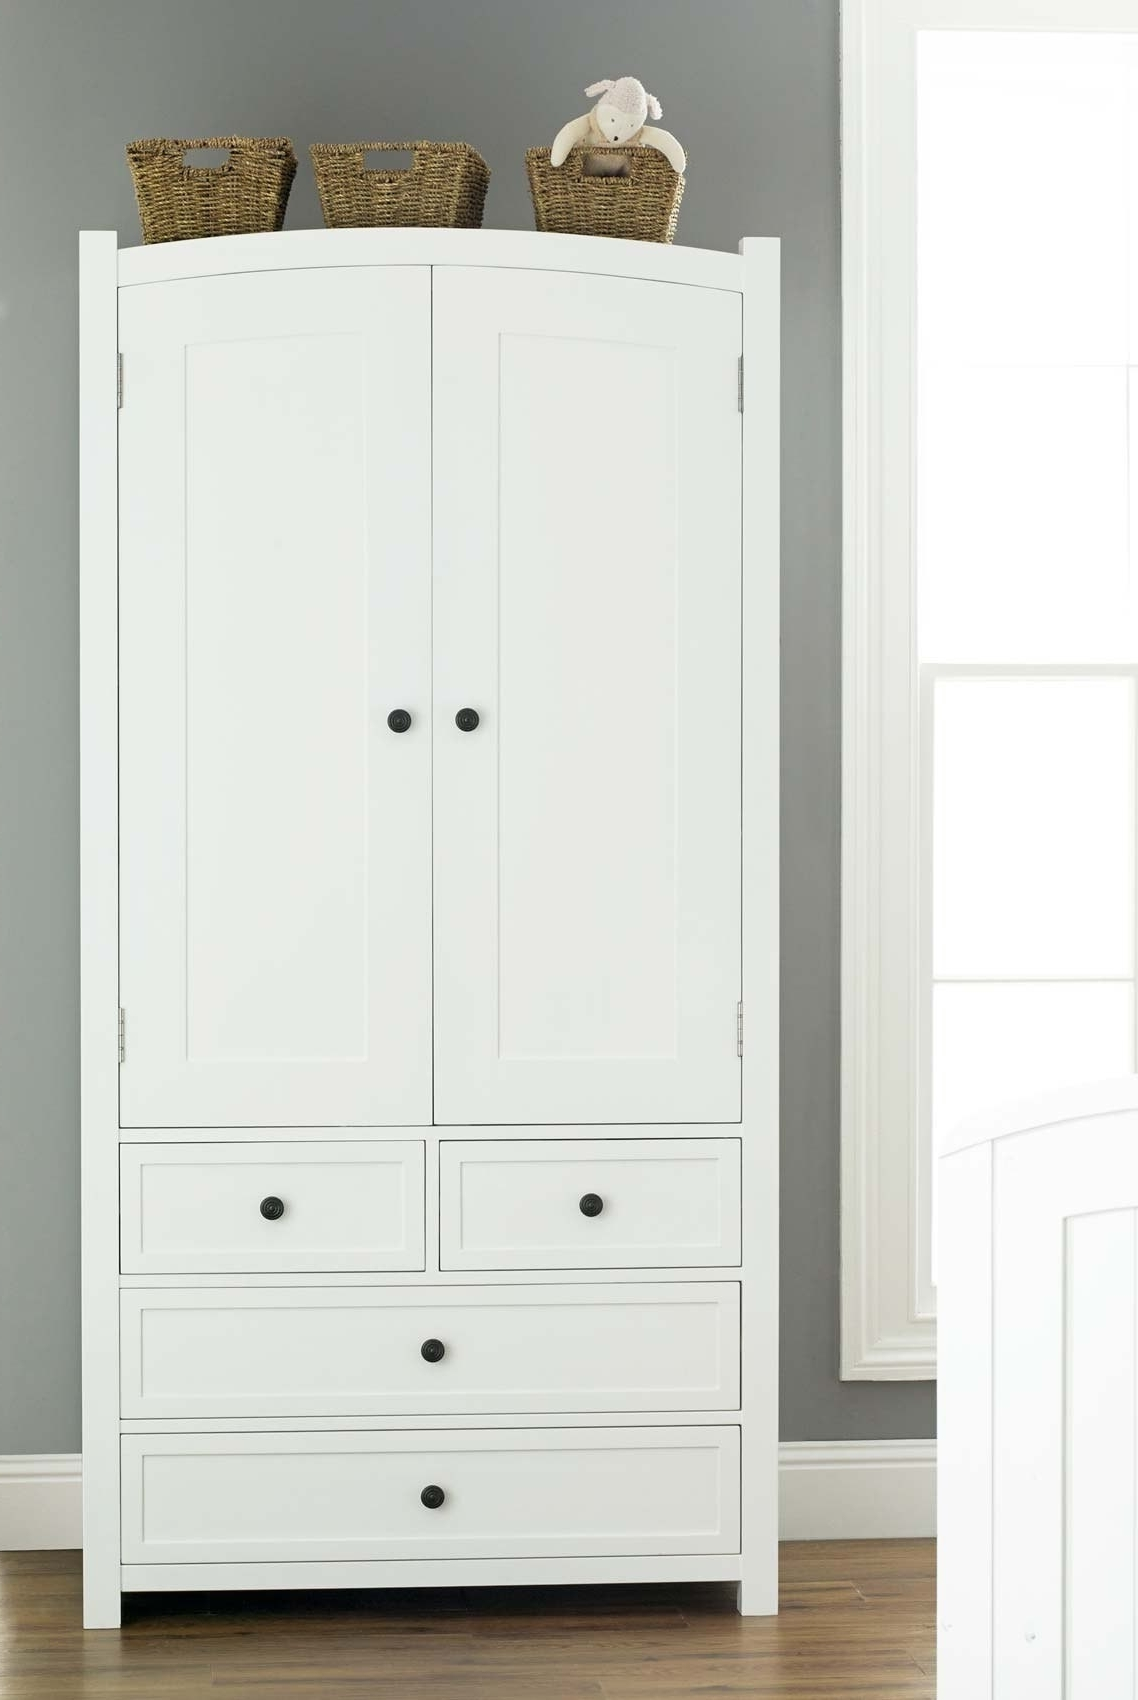 Kids White Wardrobe Luxury Wardrobe Flawless White Wooden Kids With Most Recent White Wooden Wardrobes (View 3 of 15)